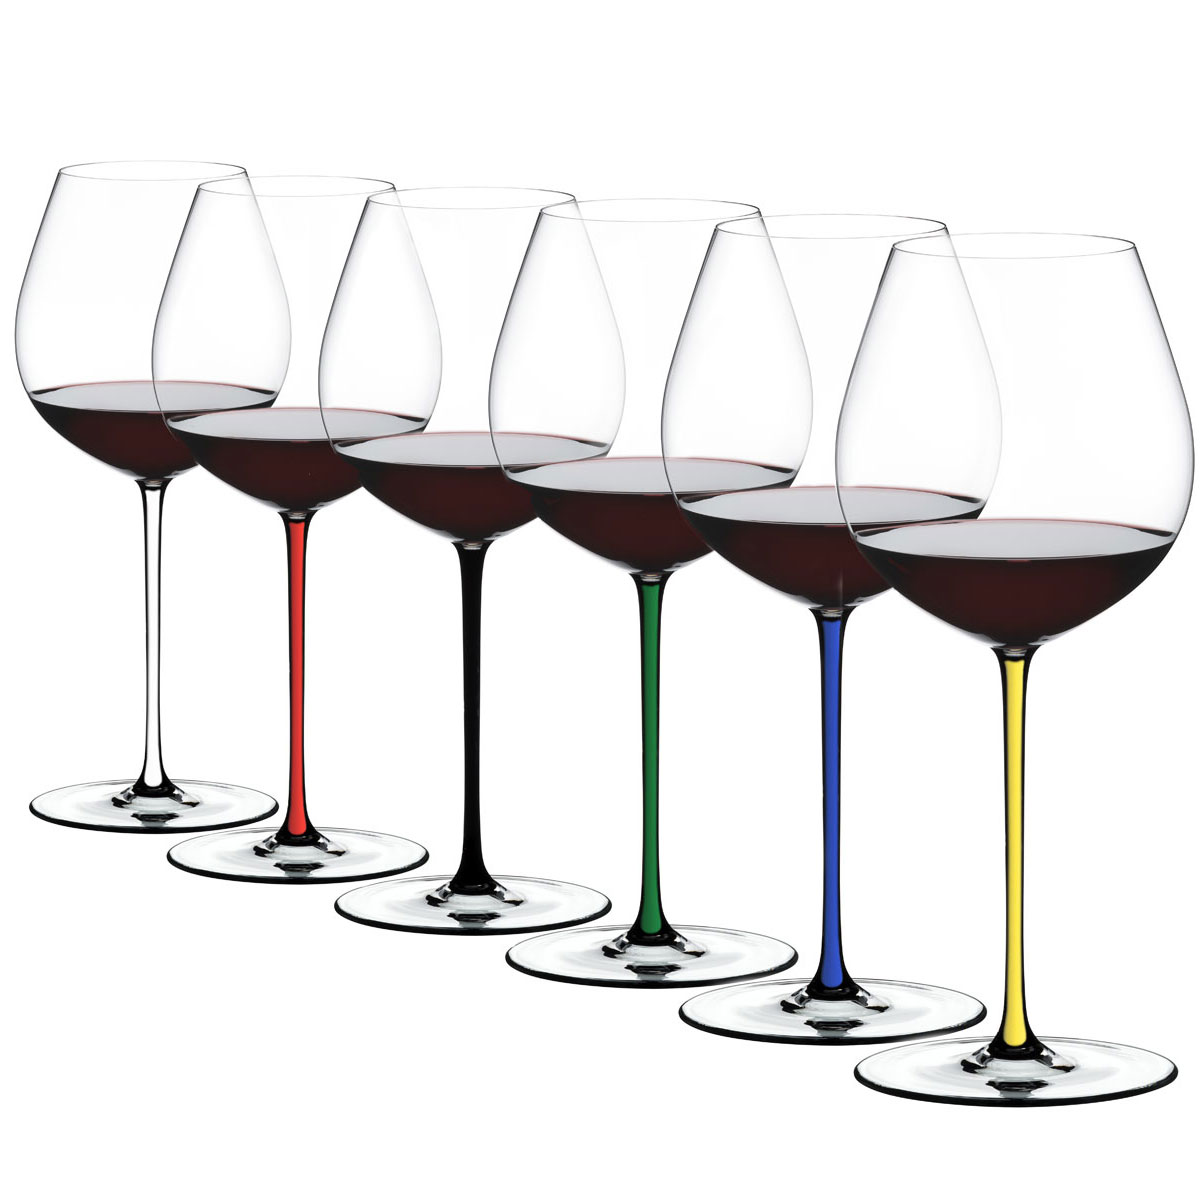 Riedel Fatto A Mano, Old World Pinot Noir Wine Glasses, Set of 6